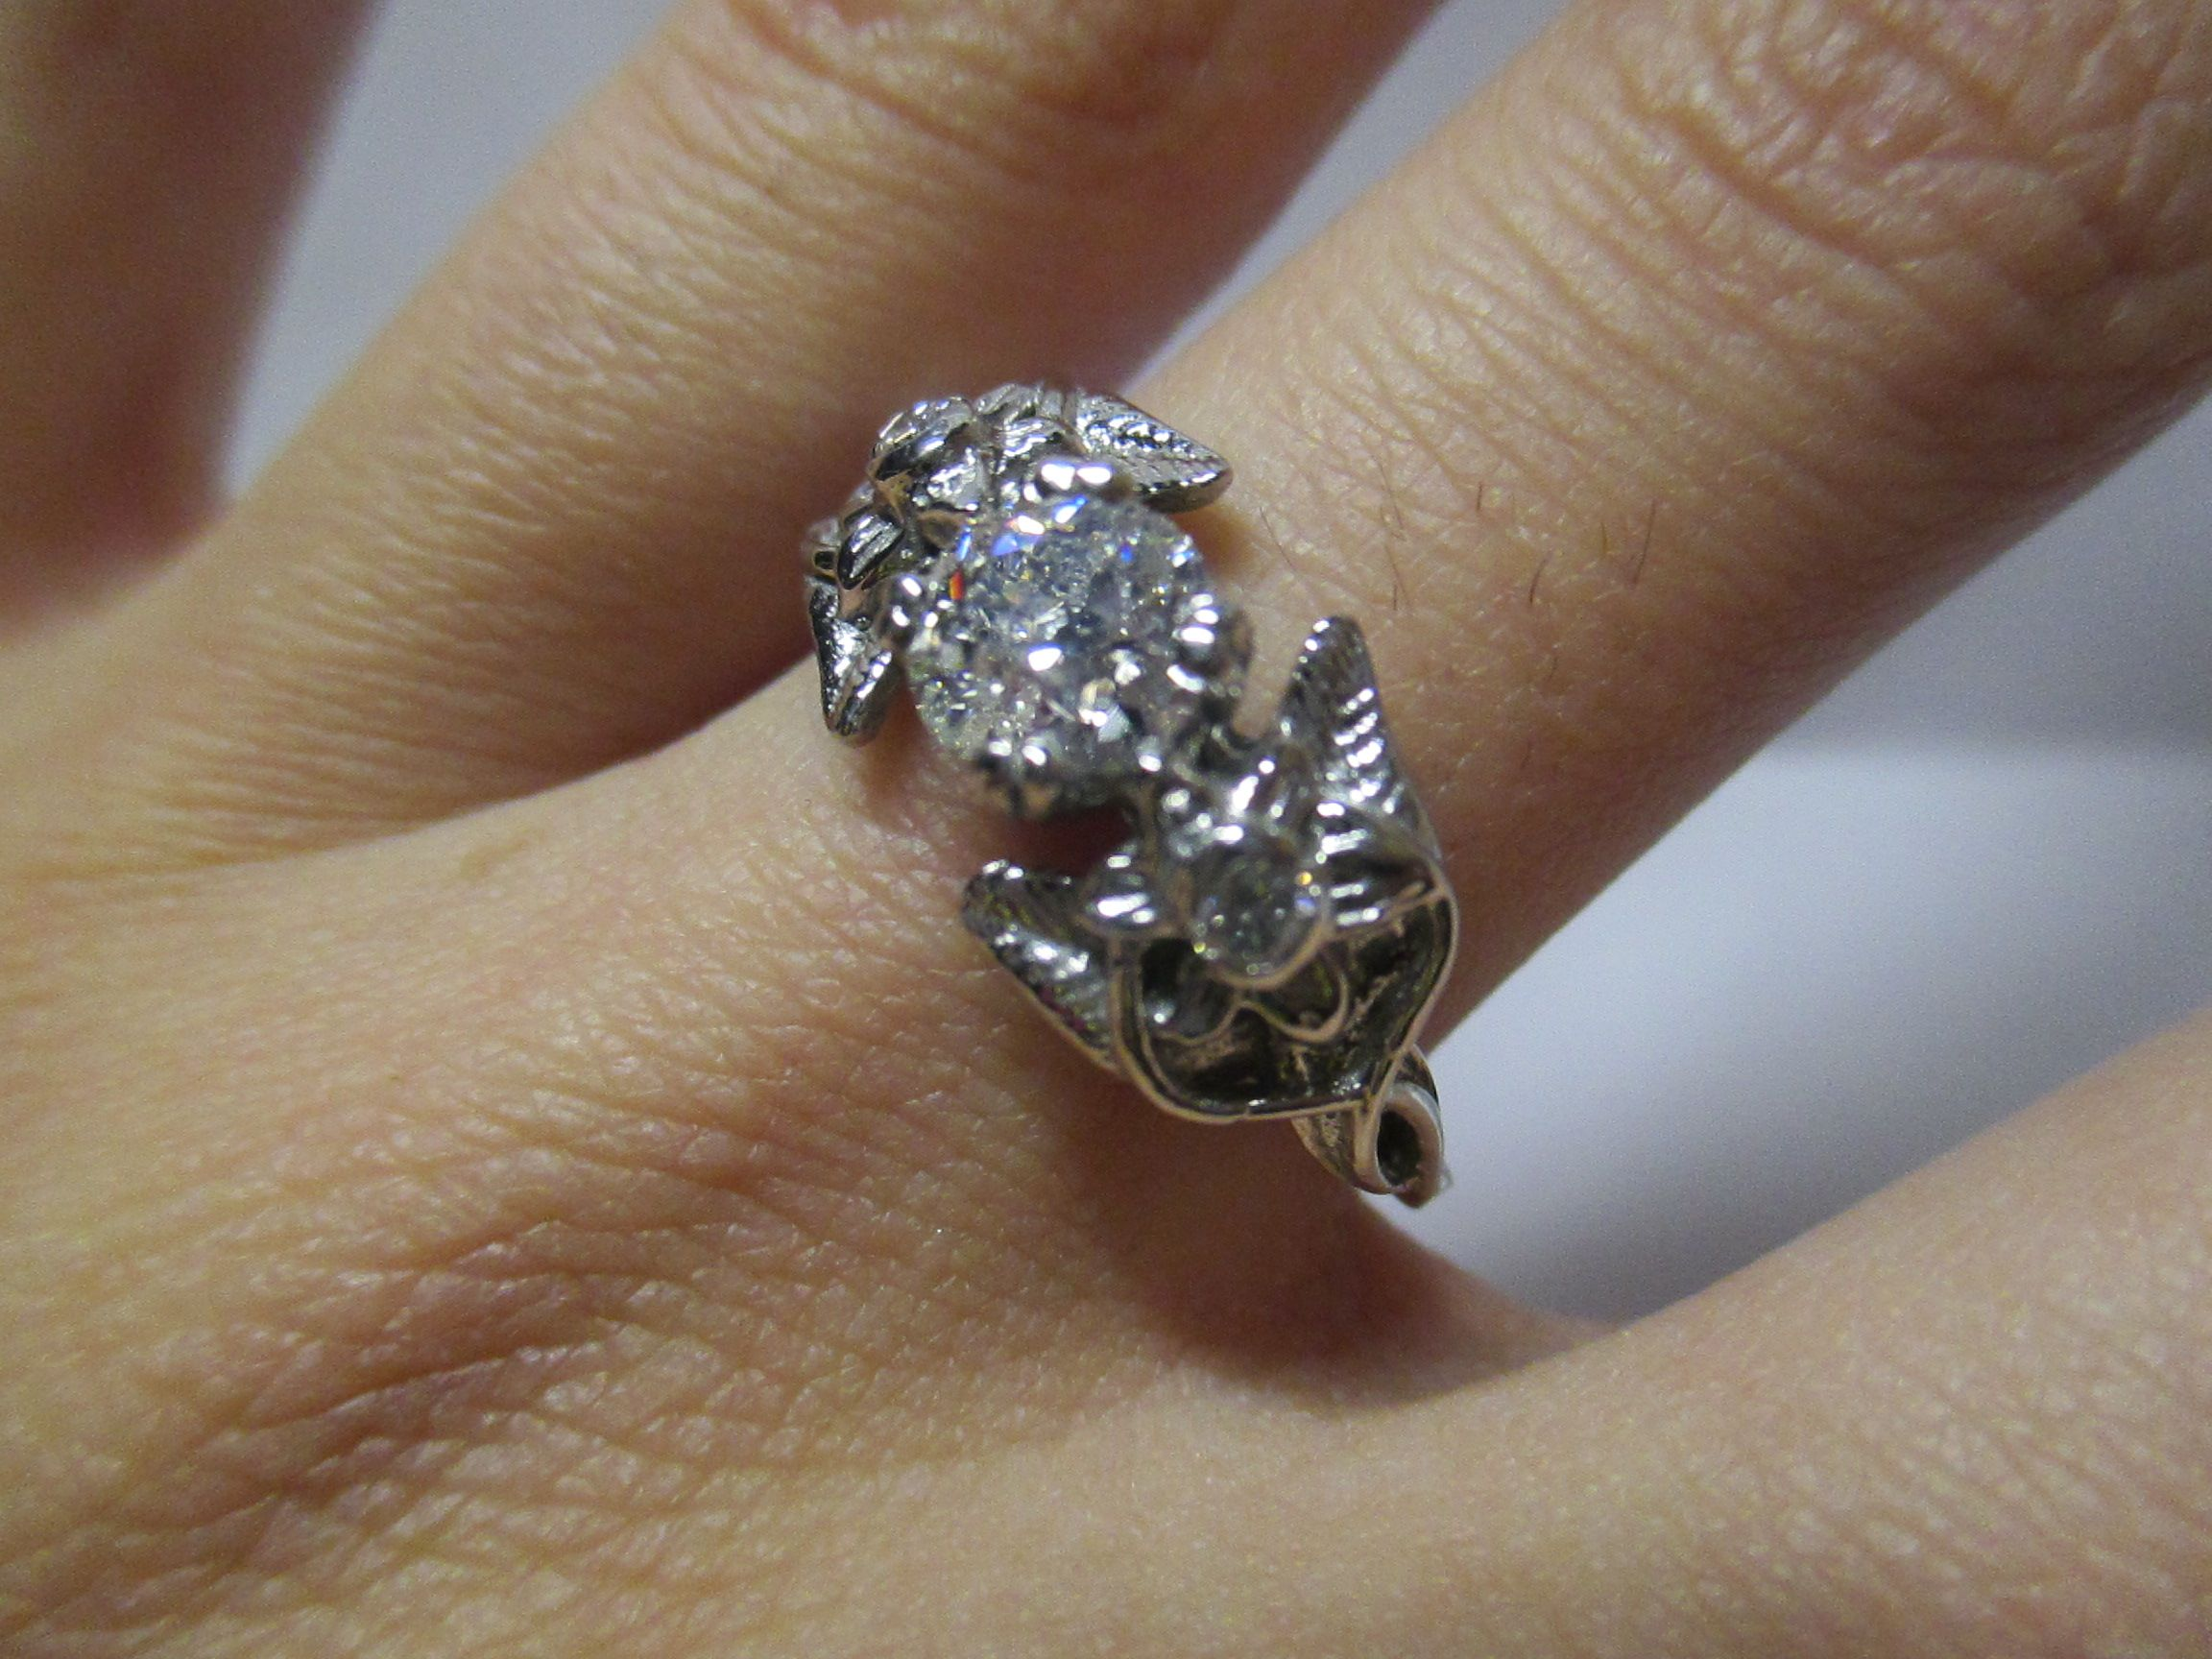 diamond church rings made jewelry wholesale engagement diamonds va man ring and falls store more charleston tacori